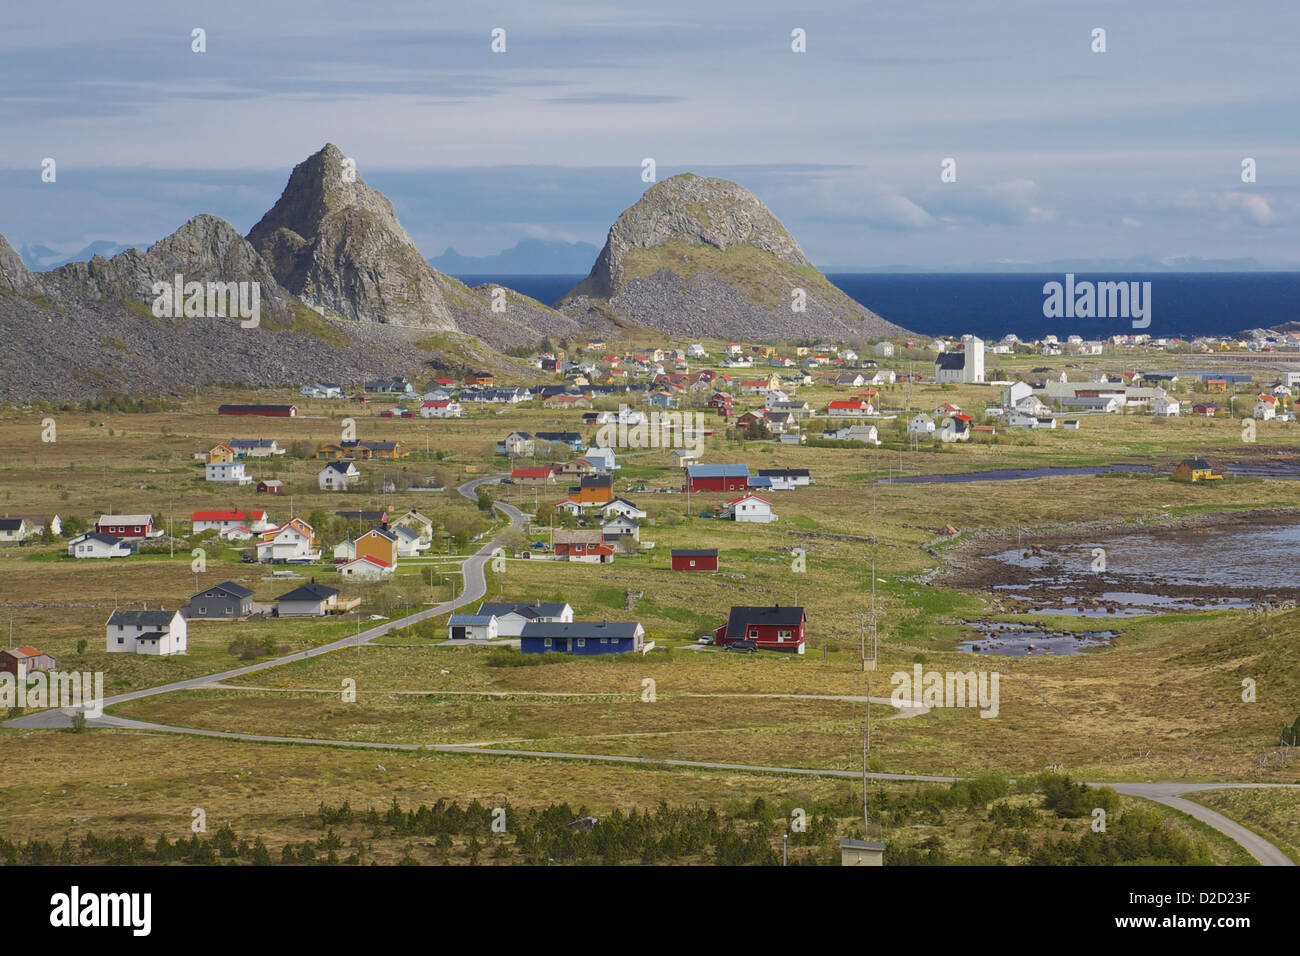 Picturesque town Sorland on Lofoten islands in Norway - Stock Image